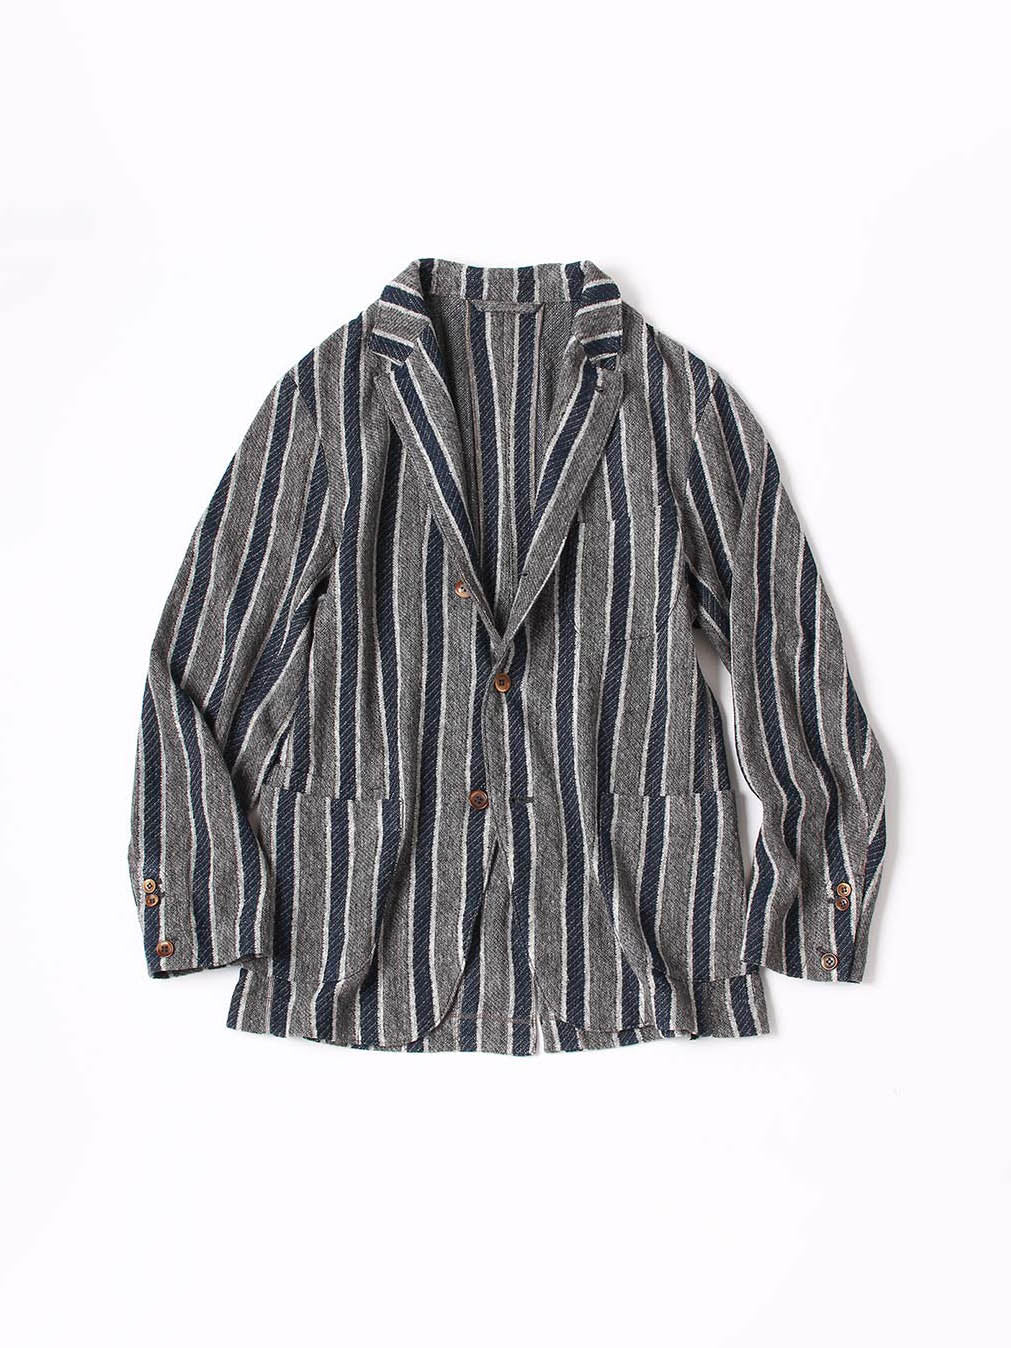 Indigo Regimental Knit Jacket